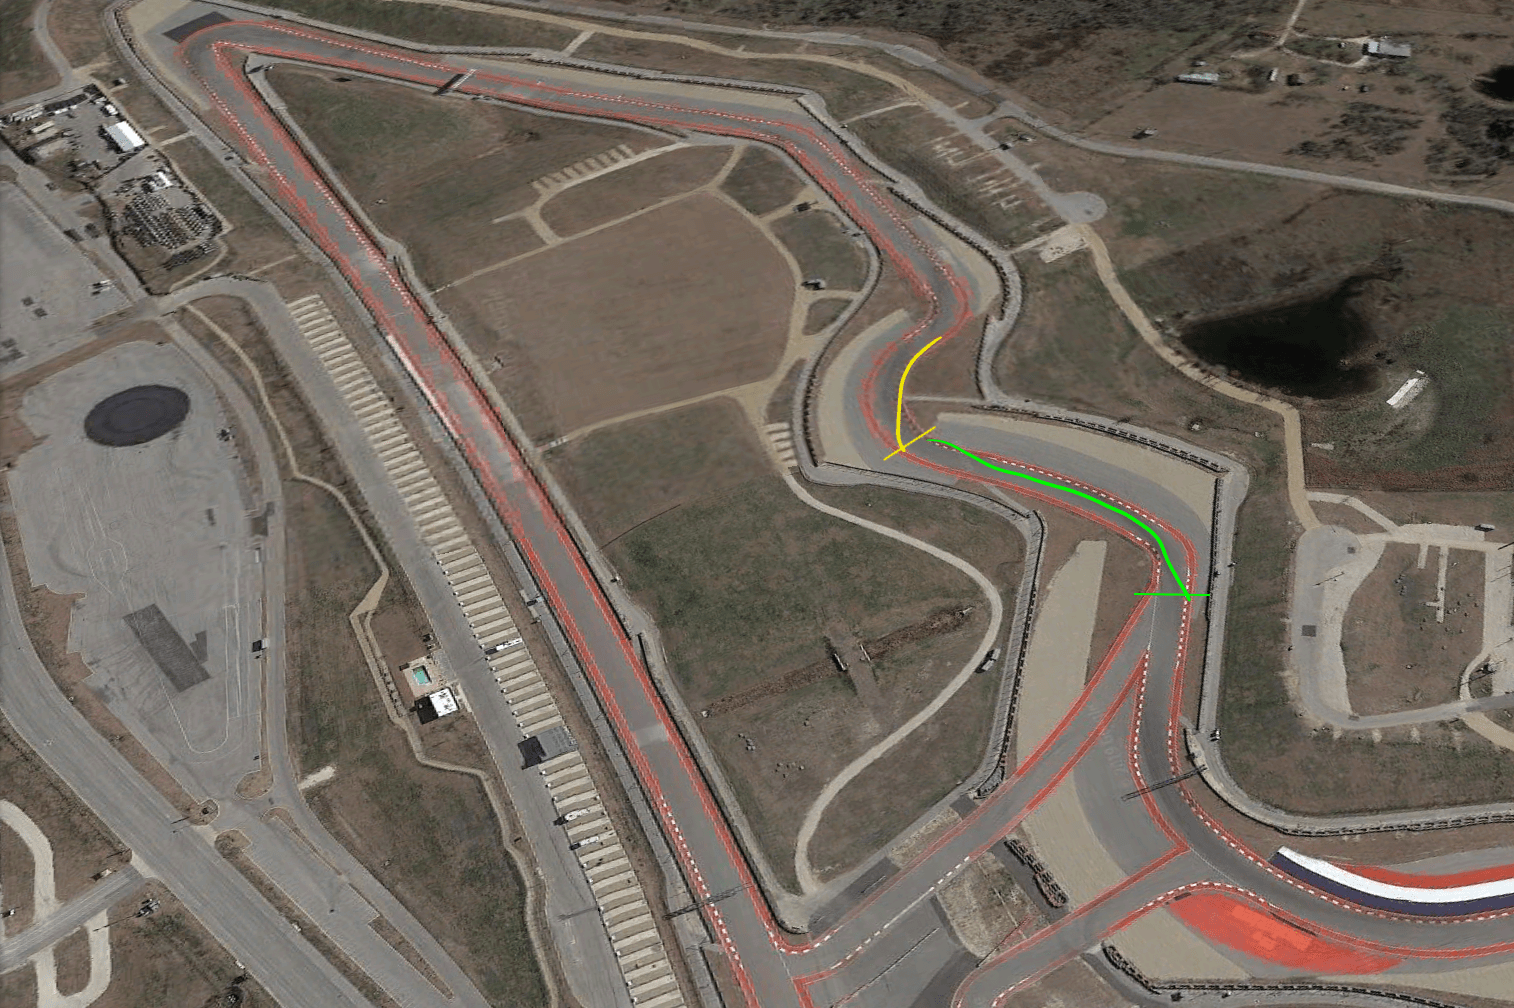 turn 7 and 8 at COTA